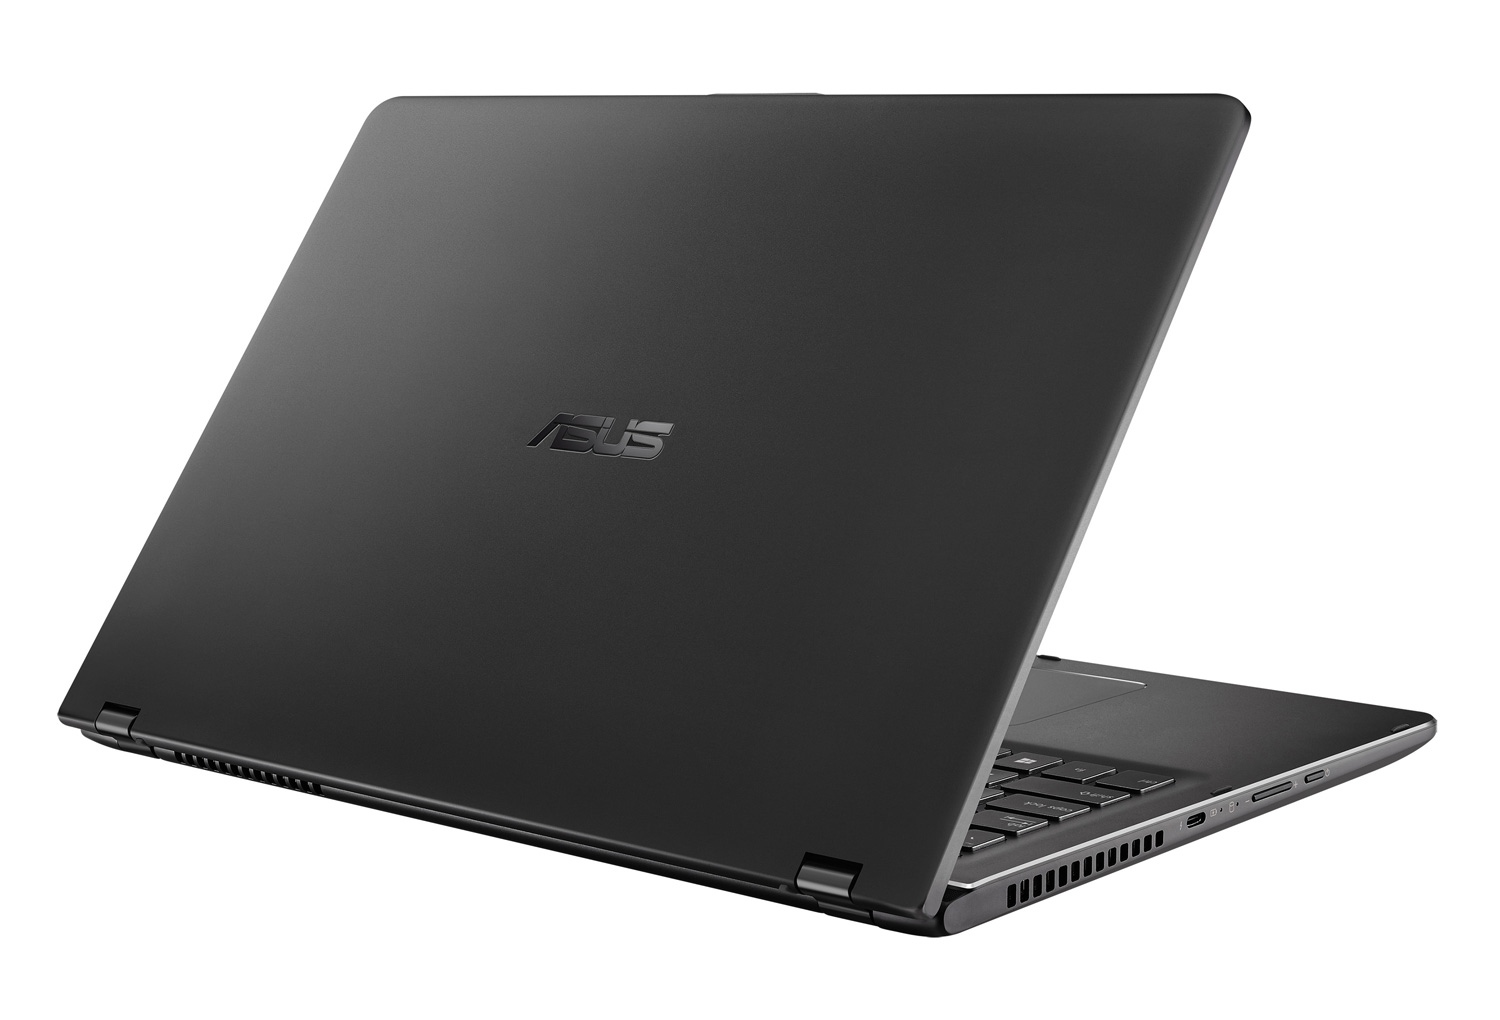 https://www.comparez-malin.fr/blog/wp-content/uploads/2017/09/asus-zenbook-flip-15-3.jpg